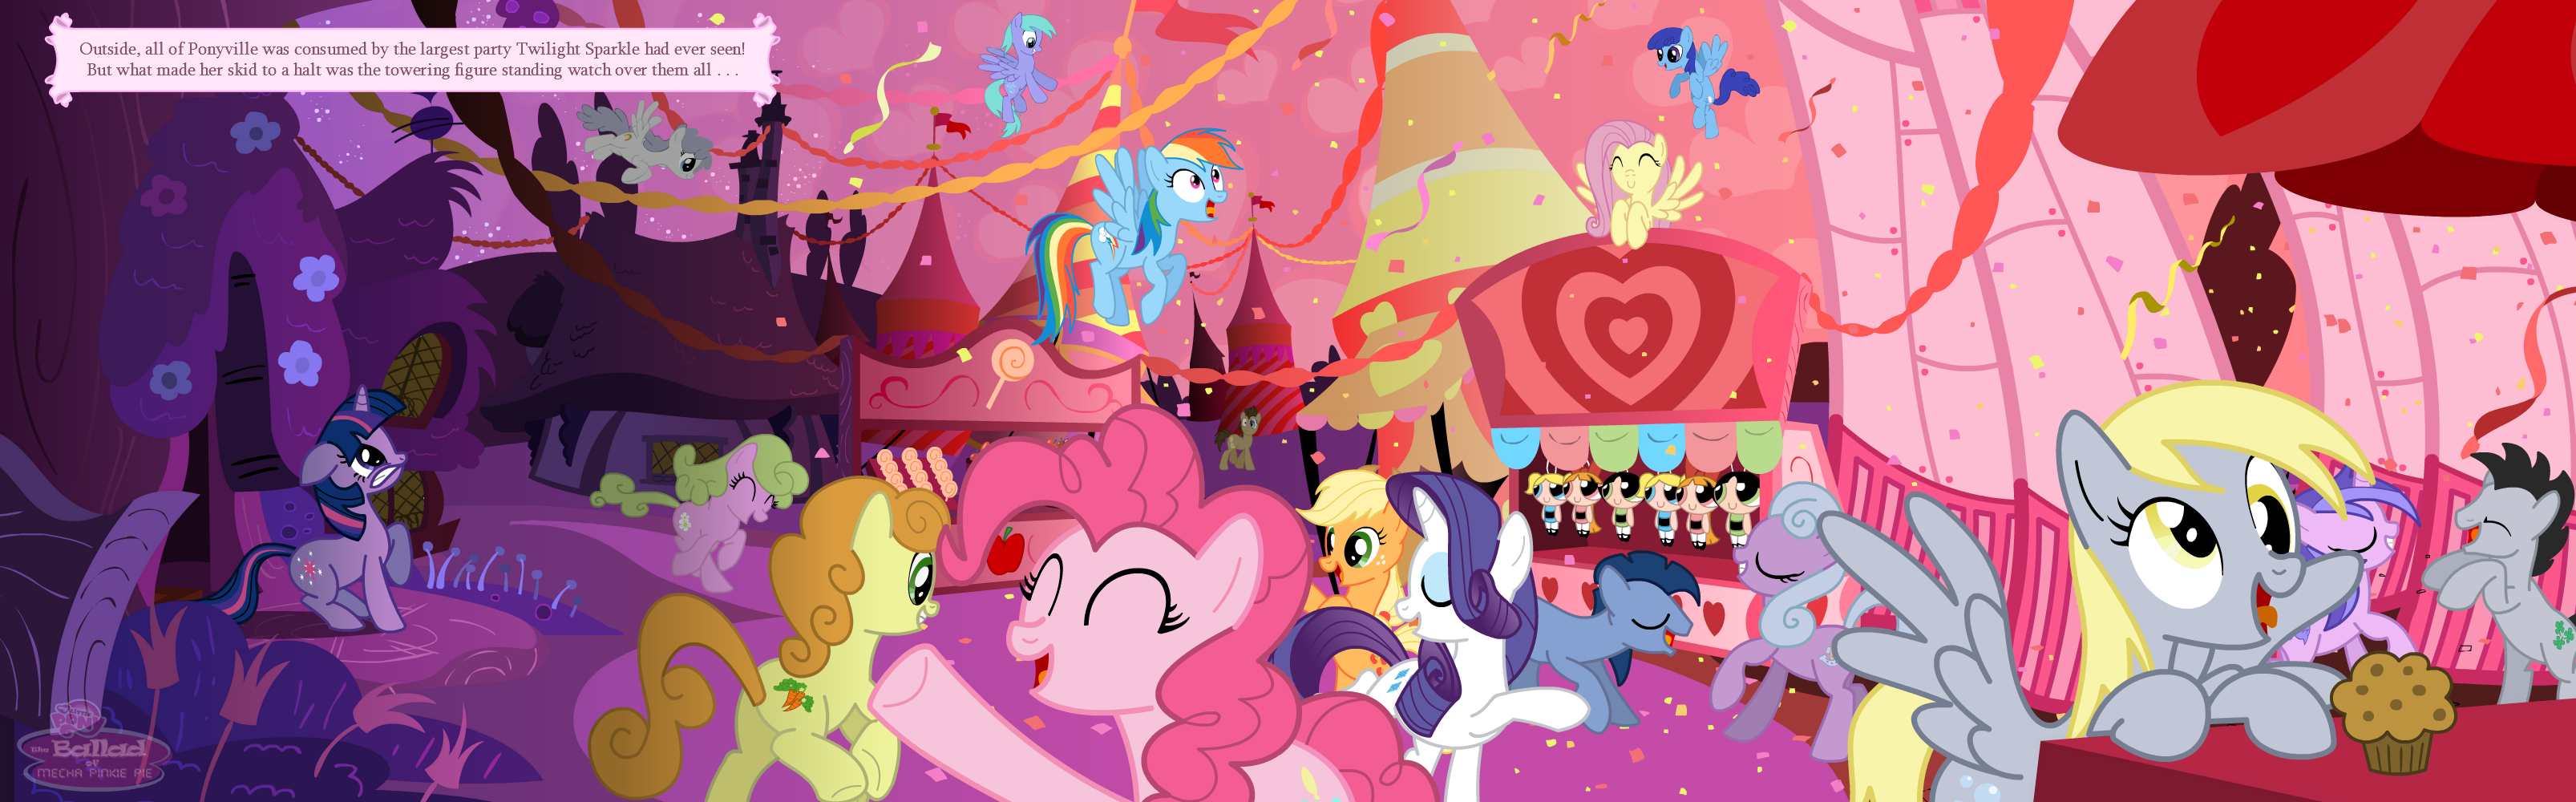 image 338713 my little pony friendship is magic know your meme